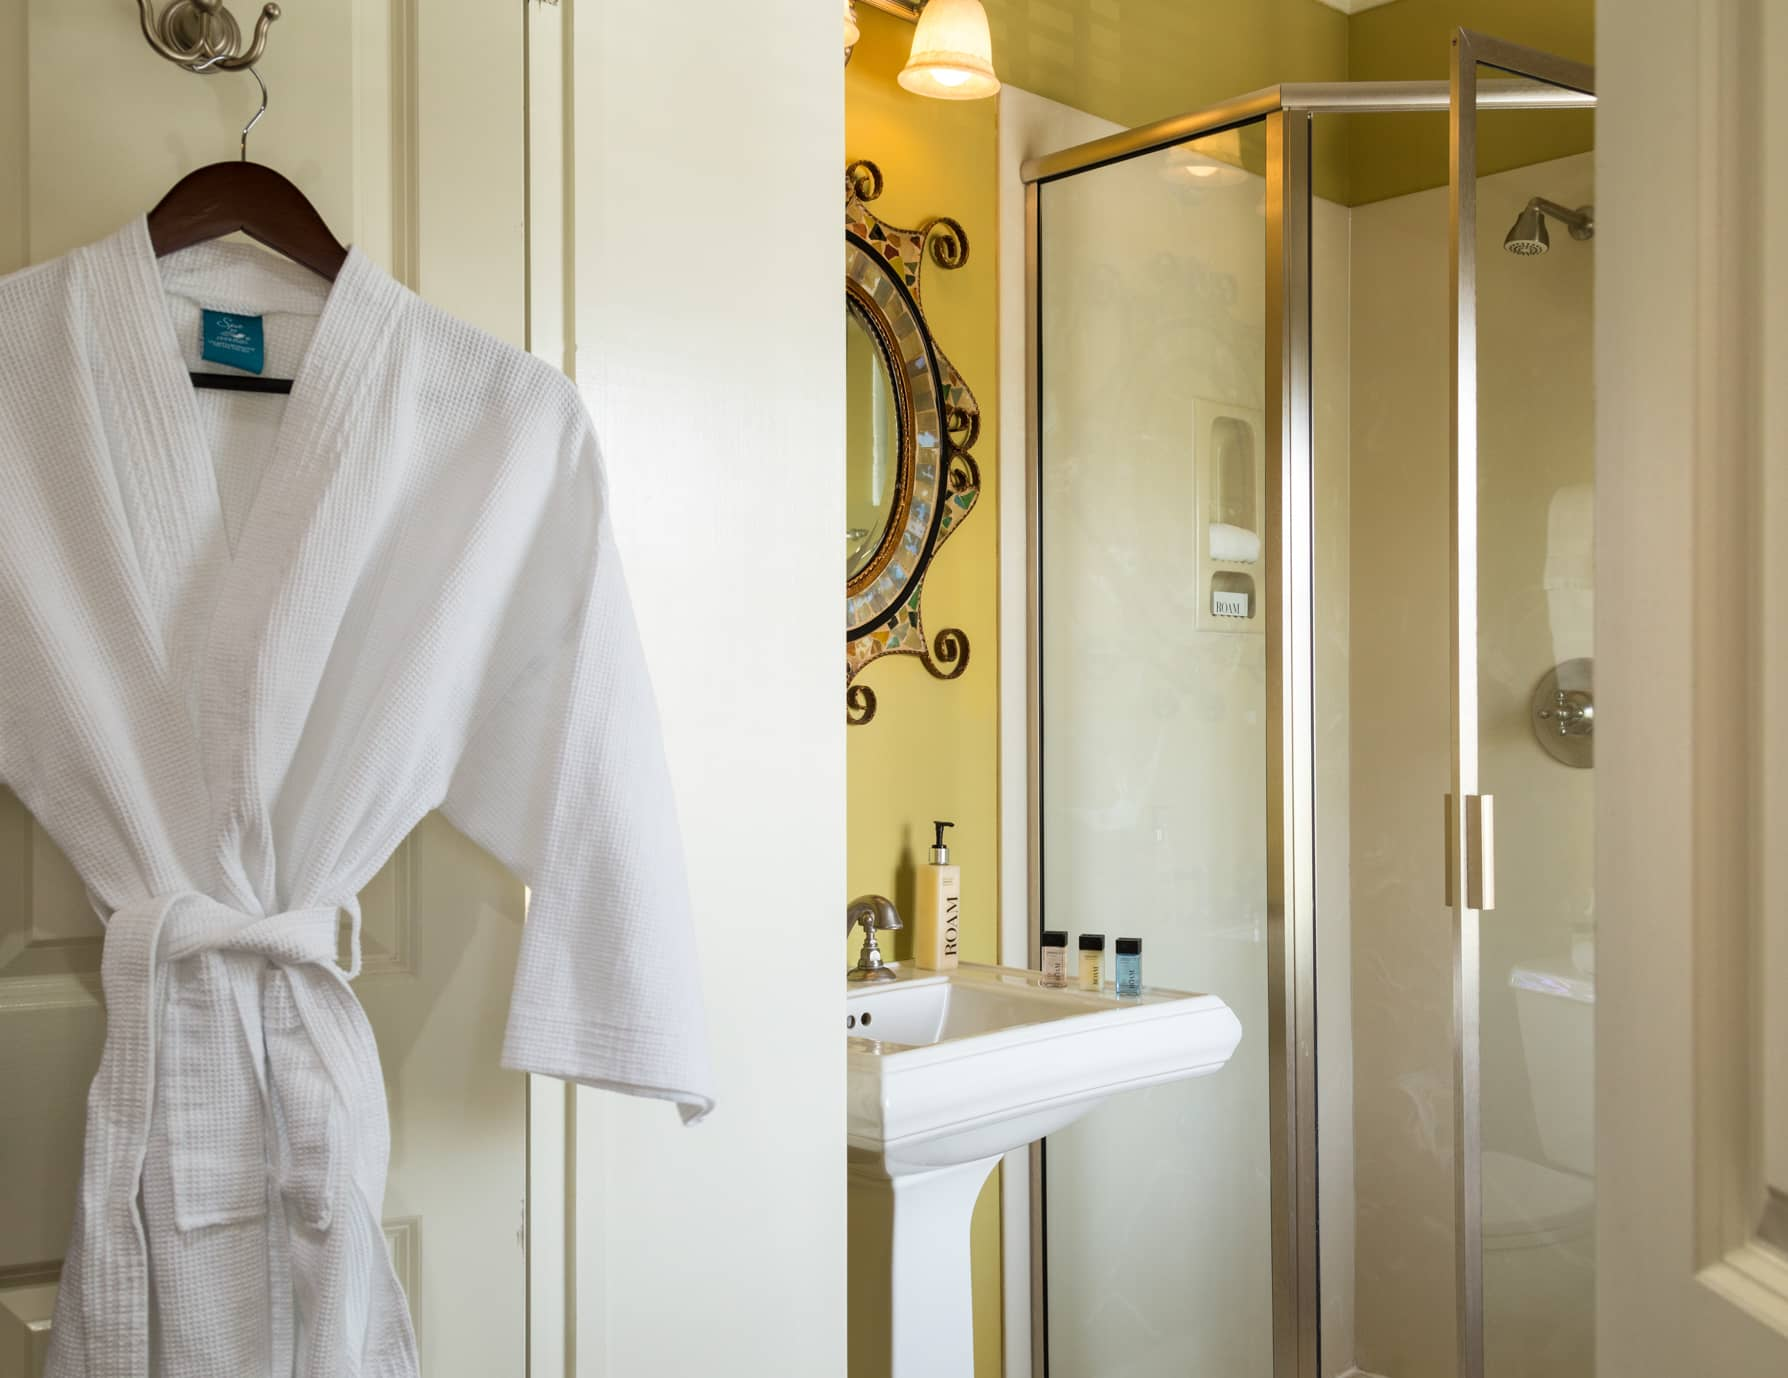 A bathroom with a walk-in shower and a white robe hanging on the bathroom door